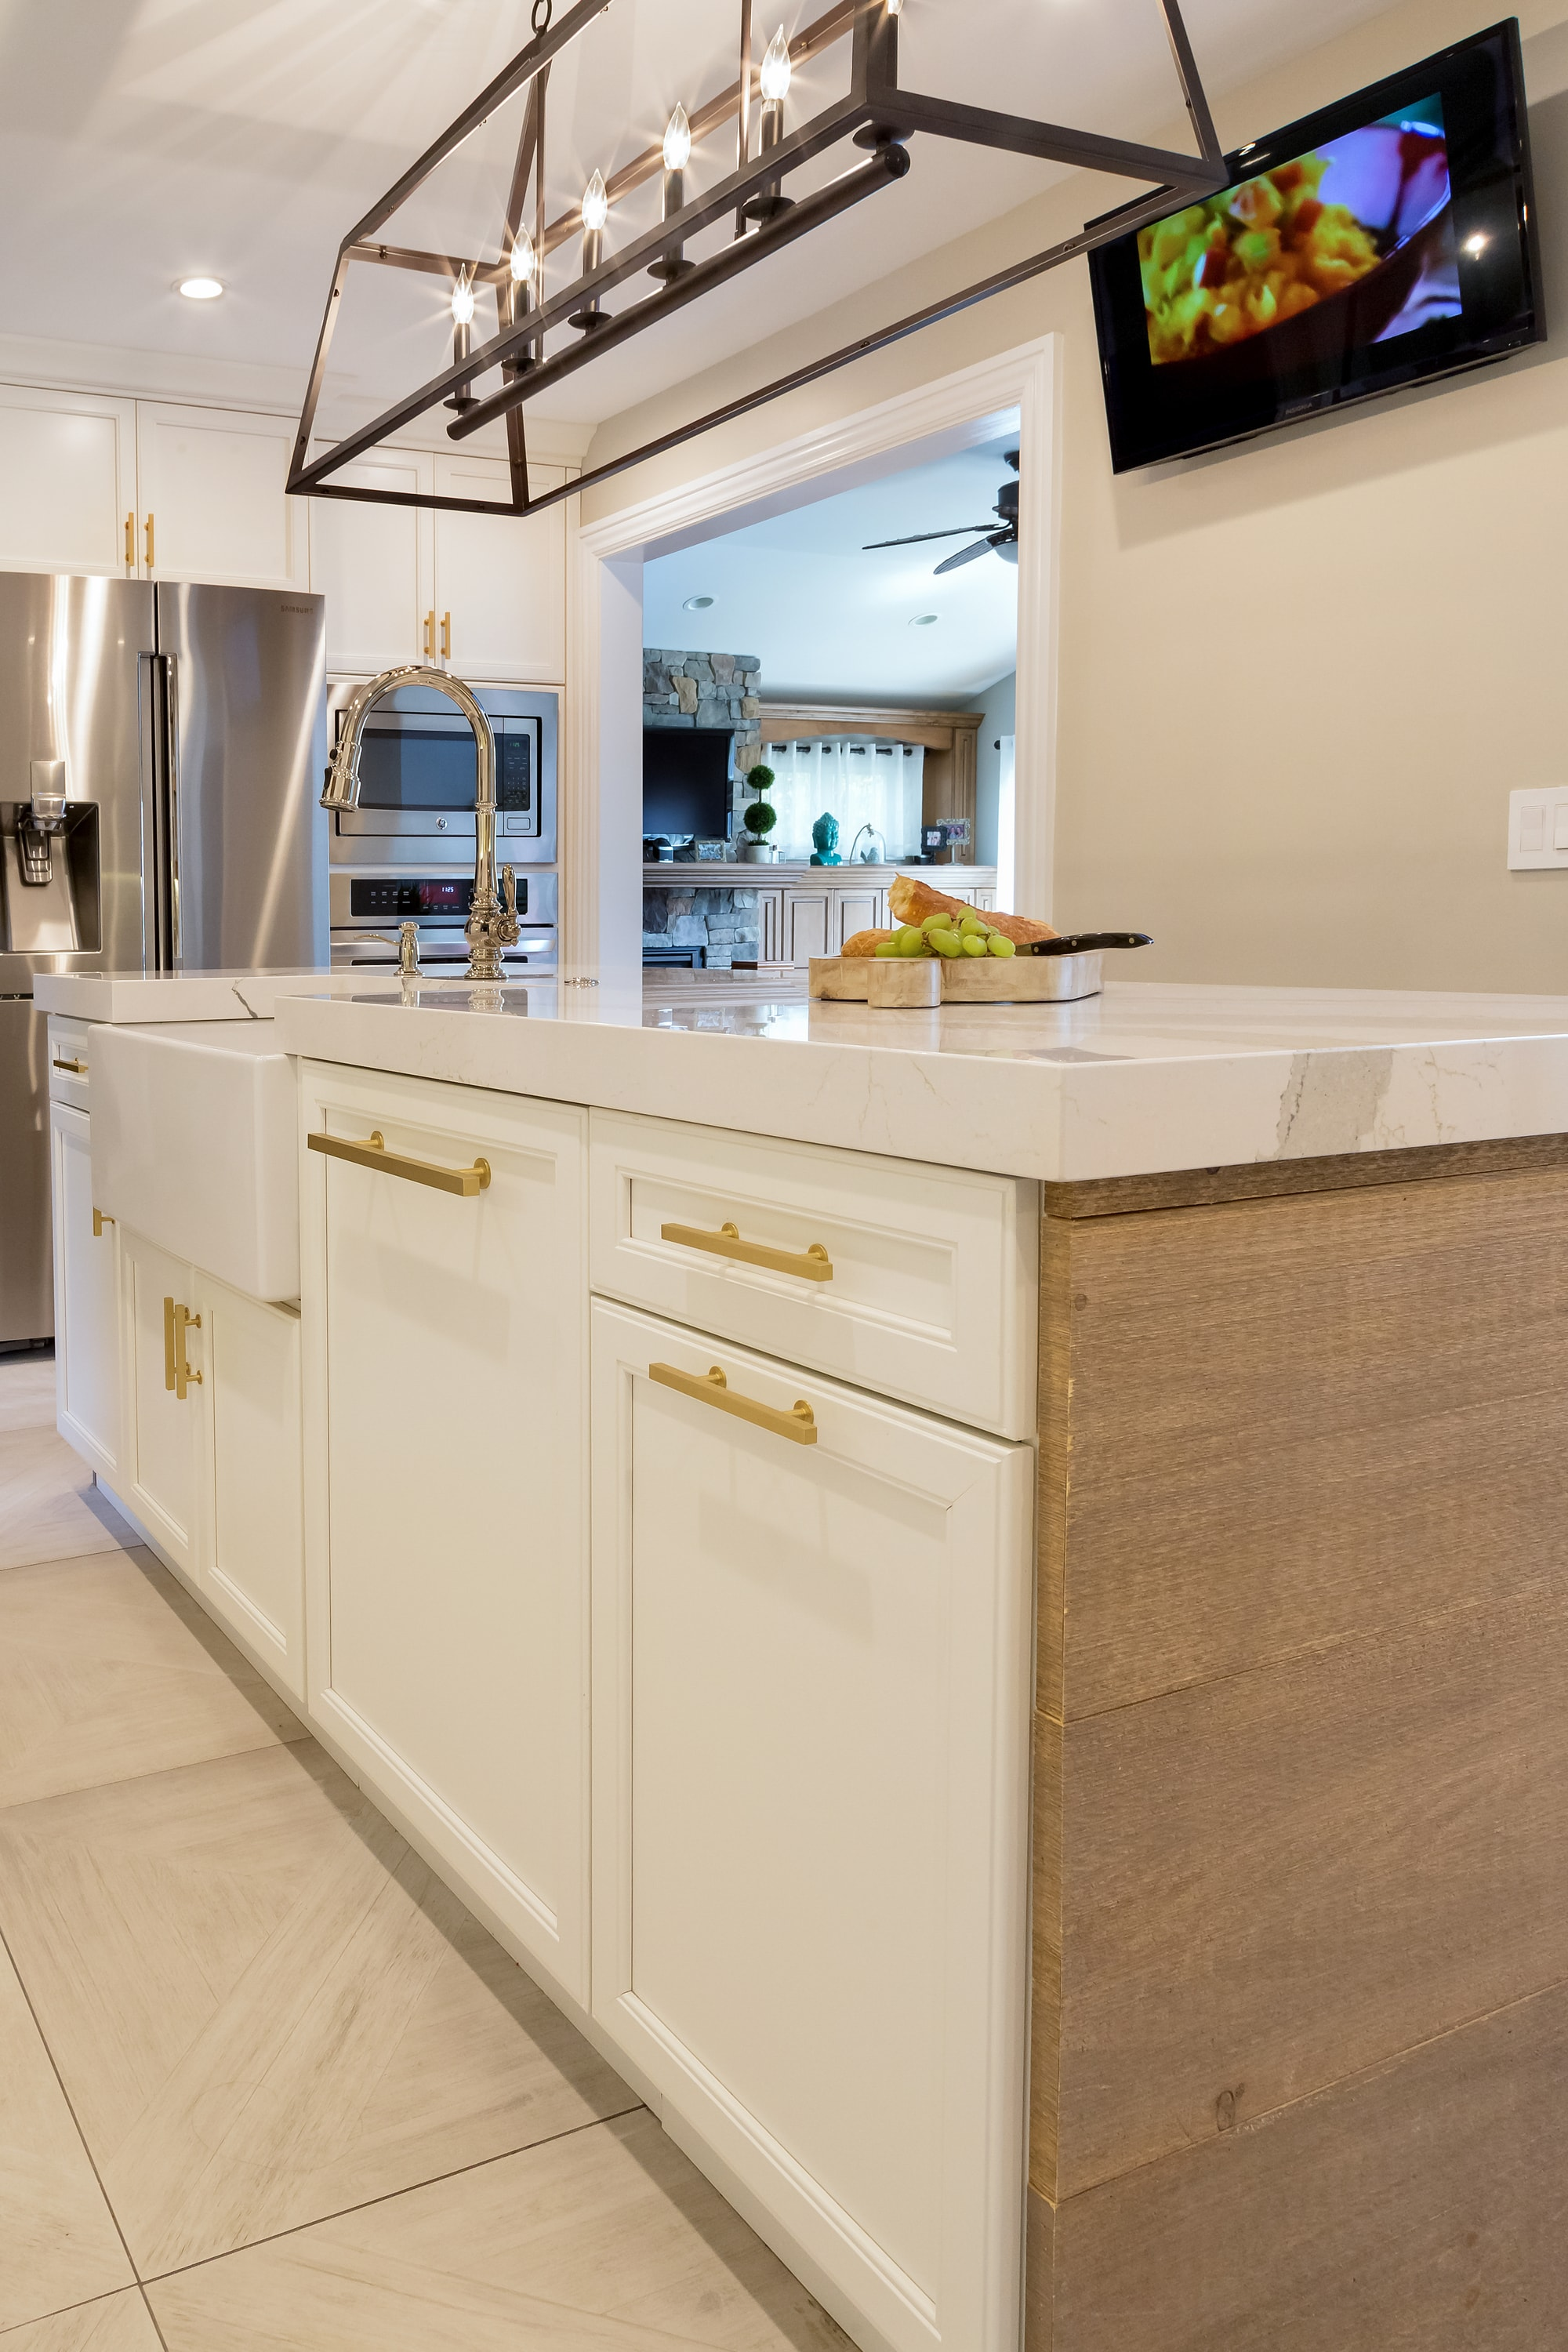 Transitional style kitchen with custom built pull out drawer on center island